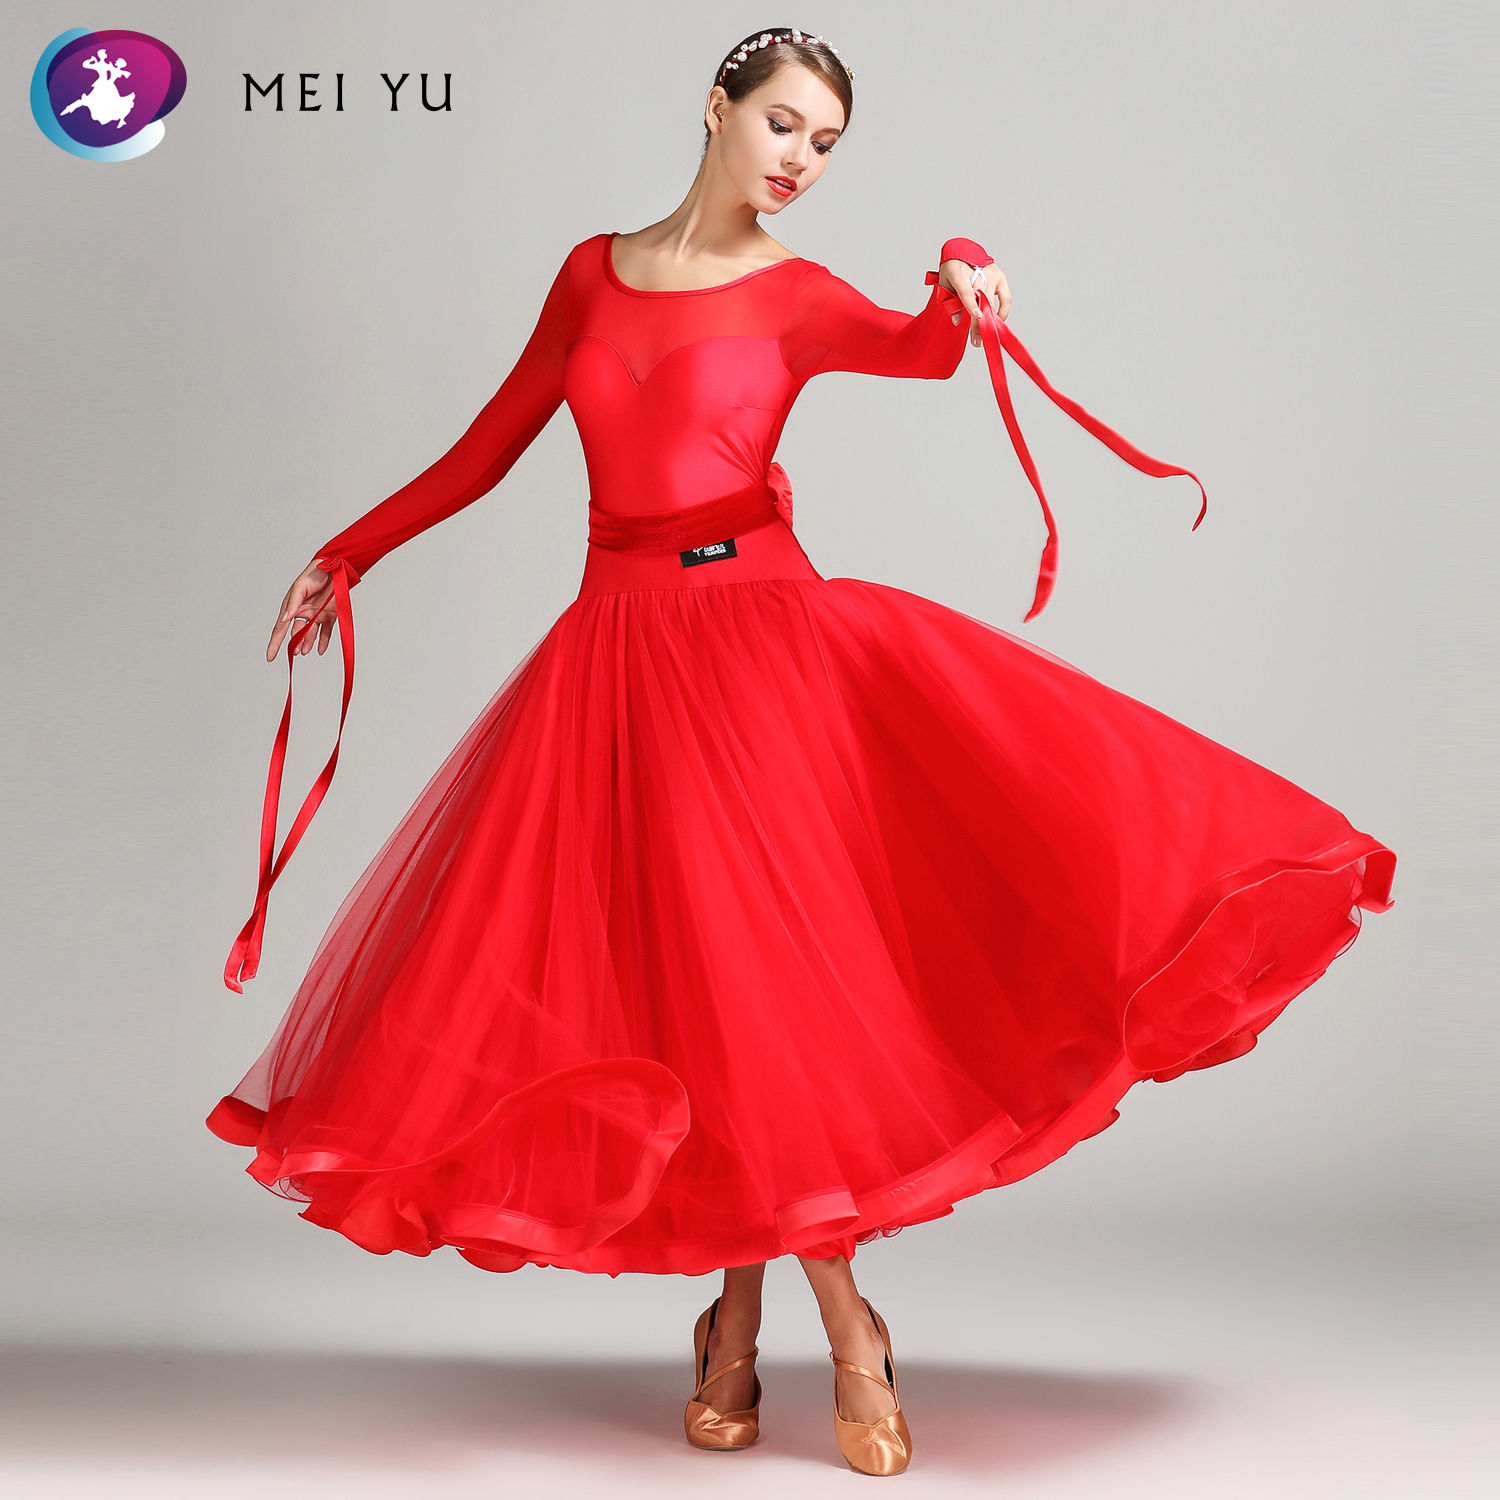 Logical Mei Yu S7007 Modern Dance Costume Women Lady Adult Dancewear Waltzing Tango Ballroom Costume Evening Party Dress Ball Gown Superior Materials Novelty & Special Use